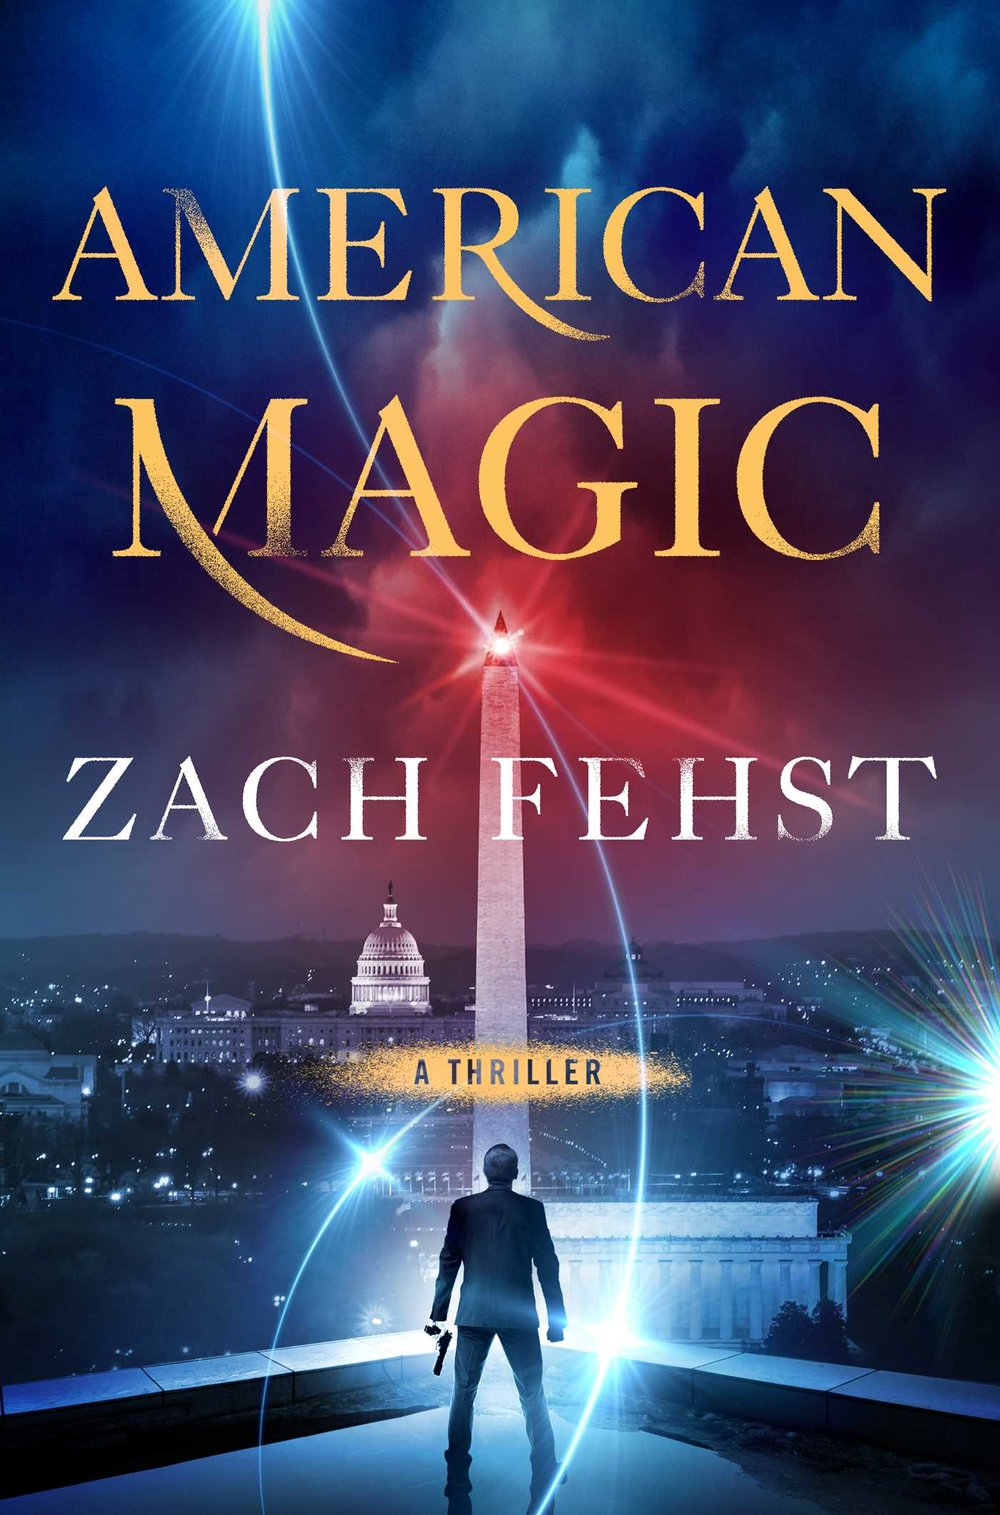 American Magic - *Coming Aug. 20, 2019 from Simon and Schuster*In this fast-paced, international thriller, chaos erupts after a shadowy figure with ties to an elite and ancient society posts incantations on the dark web that allow people to perform real magic.When an enigmatic message uploaded to the dark web turns out to contain an ancient secret giving regular people the power to do impossible things, like levitate cars or make themselves invisible, American government officials panic. They know the demo videos on YouTube and instructions for incantations could turn from fantastical amusement to dangerous weapon at the drop of the hat, and they scramble to keep the information out of the wrong hands.They tap Ben Zolstra, an ex-CIA field operative whose history with the Agency is conflicted at best, to lead the team that's racing to contain the dangerous knowledge—and track down the mysterious figure behind the leak who threatens that even more dangerous spells will be released one by one until the world as we know it no longer exists.This sweeping, globe-spanning thriller explores the dark consequences of a question mankind has been asking for centuries: What if magic were real?